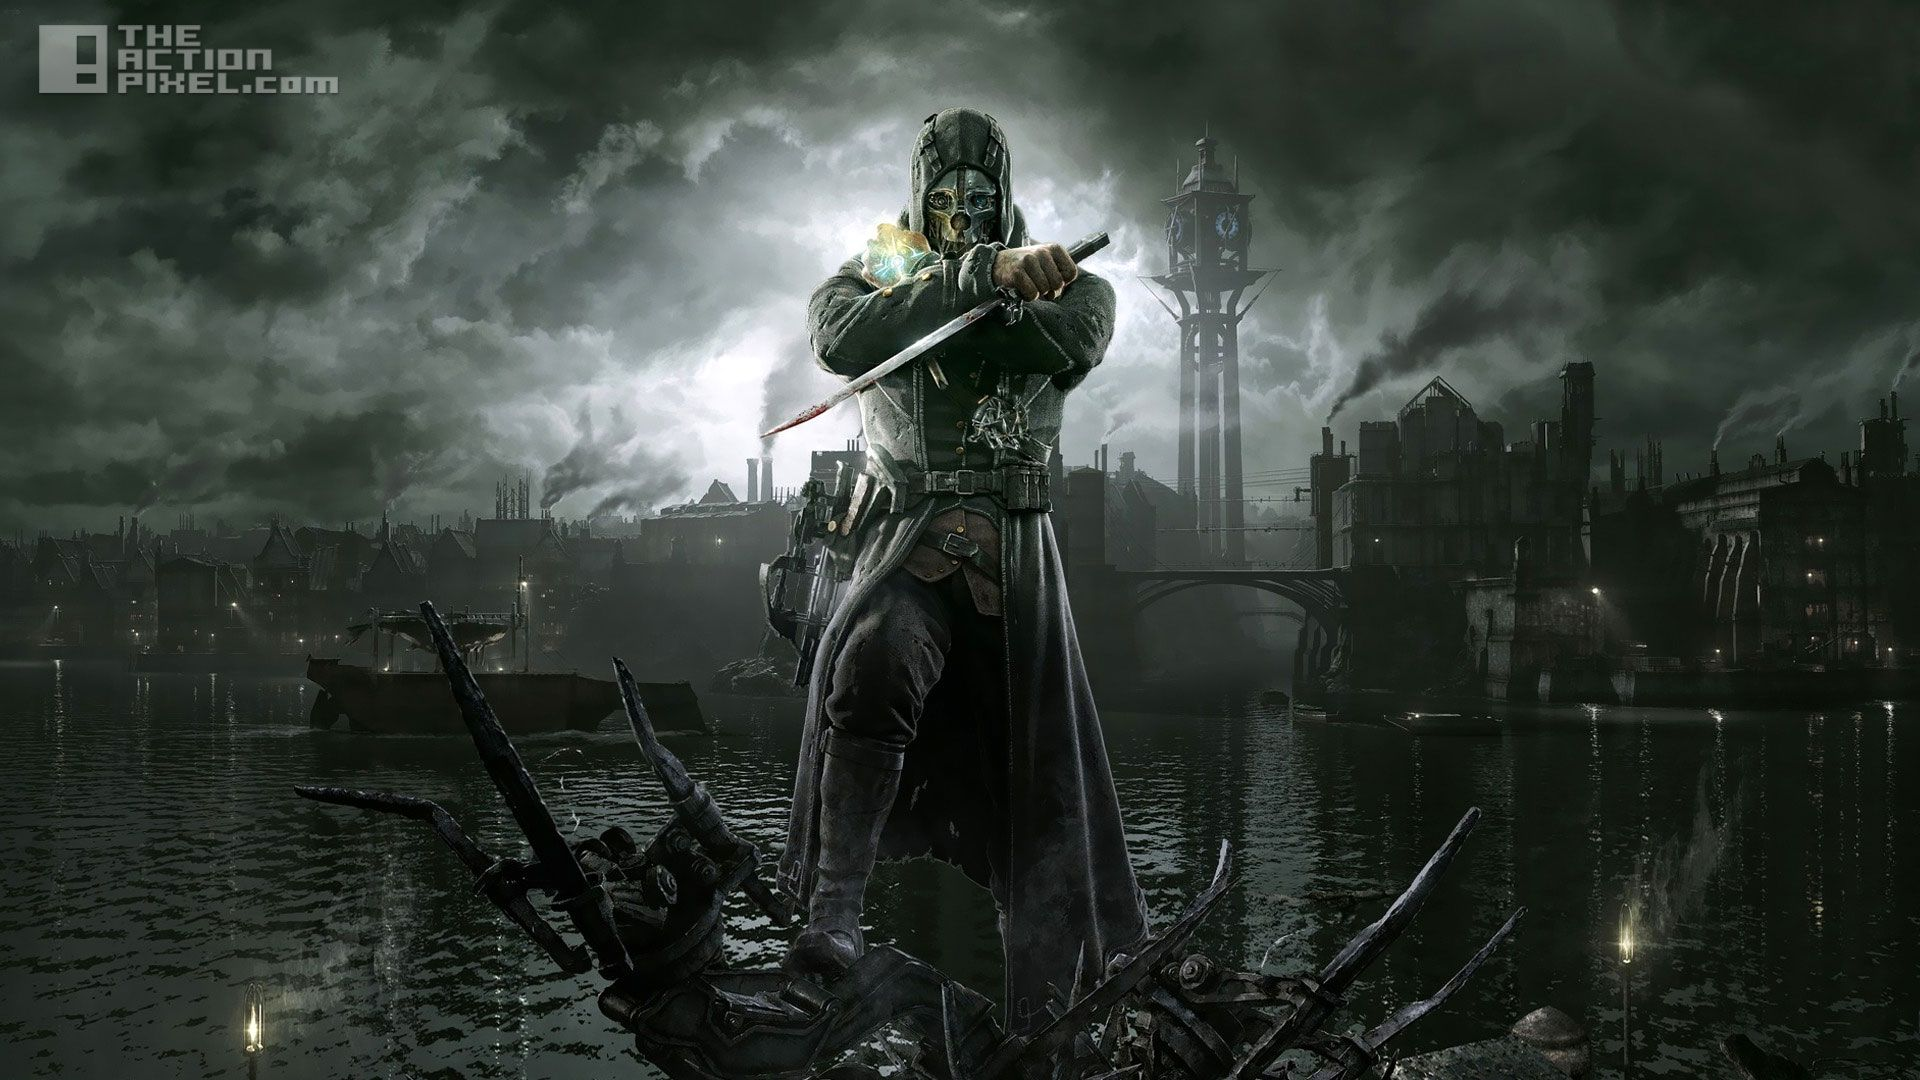 Dishonoured Google Search Dishonored Witch Wallpaper 4k Wallpapers For Pc